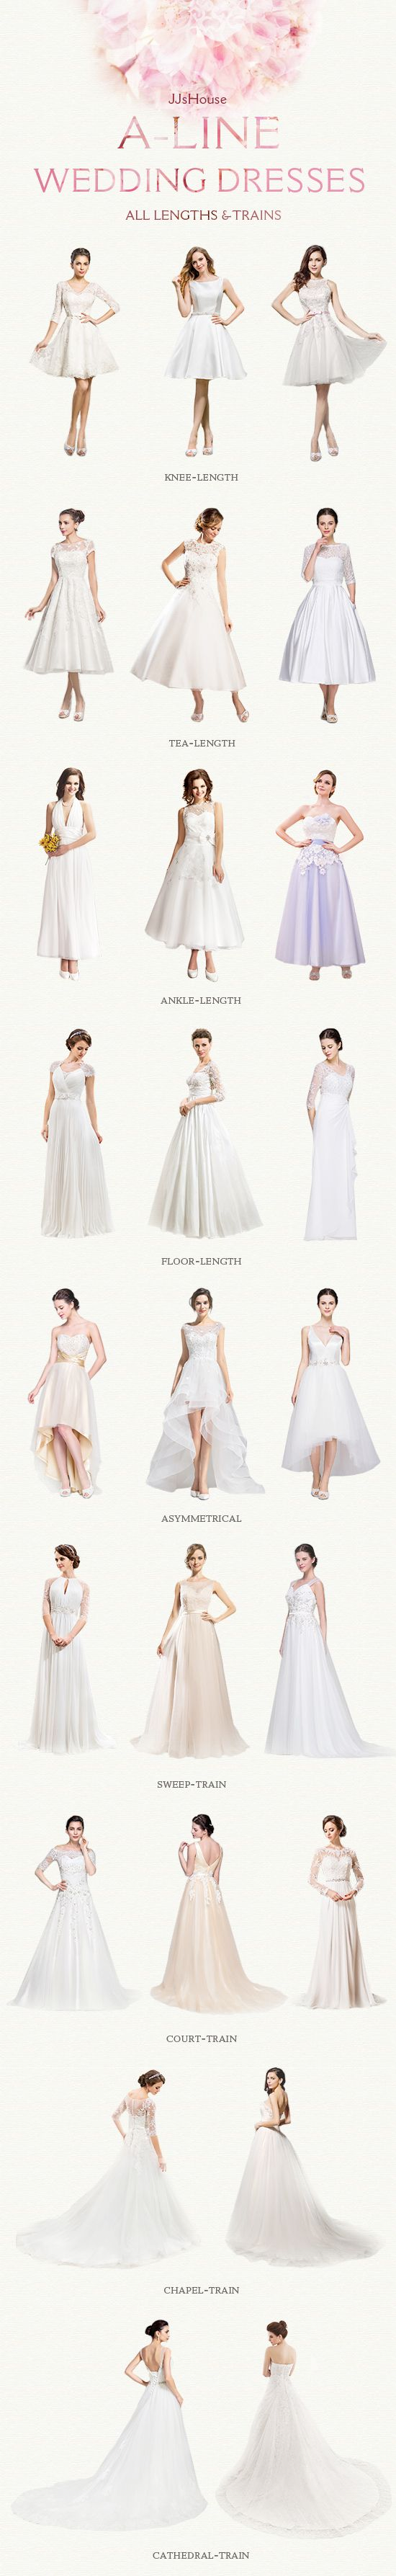 Ball gown wedding dresses with all lengths & trains.Hope it can help you as a reference when you choose your wedding dress.JJsHouse Your One Stop Shop For Wedding Dresses #JJsHouse